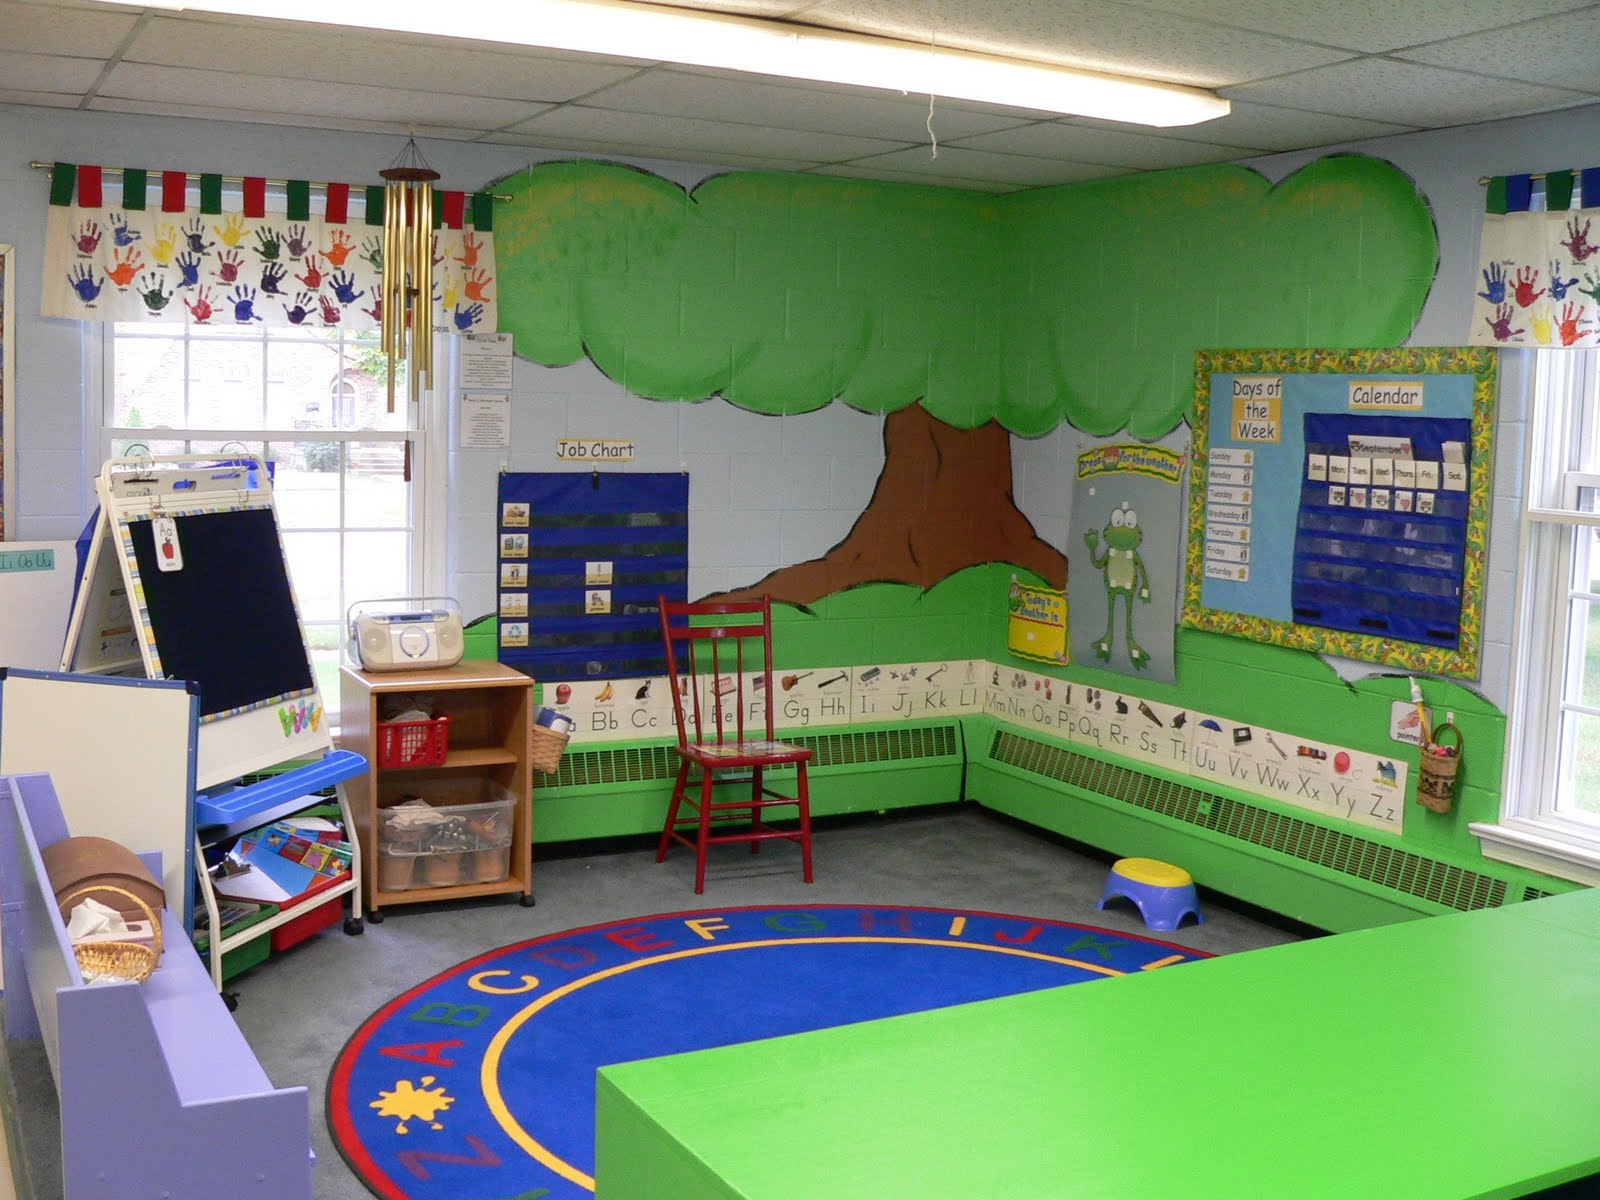 Classroom Design In Preschool ~ Lesson plans to pots and pans montessori makeover